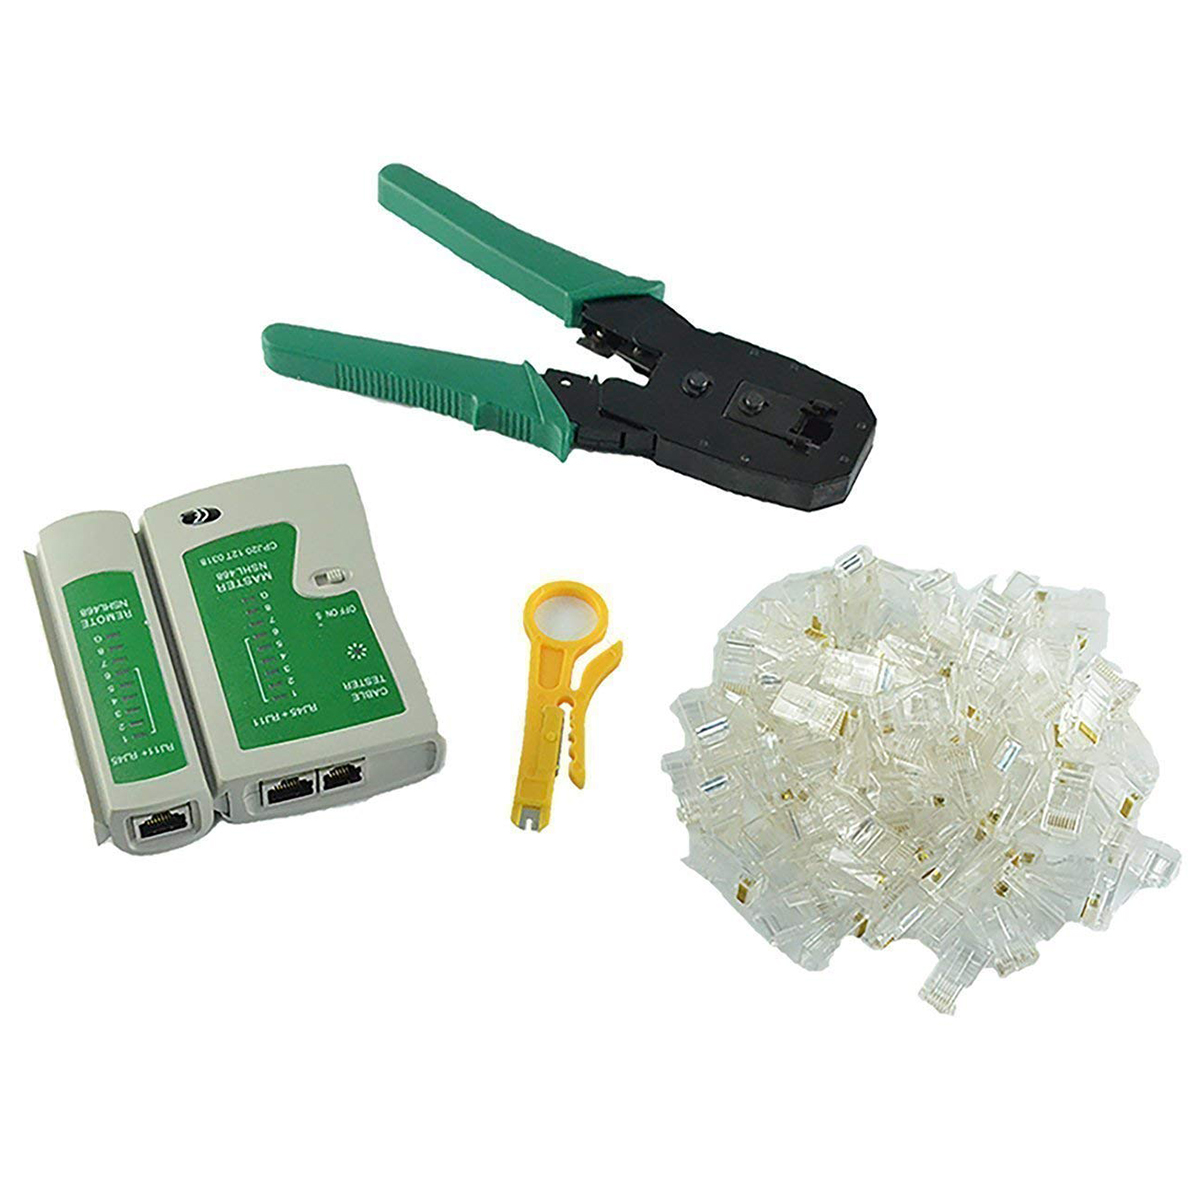 Network Ethernet LAN Kit 4 in 1 Cable Tester Crimping Plier Crimper Wire Stripper 100x Rj45 Cat5 Cat5e Connector Plug Network(China)